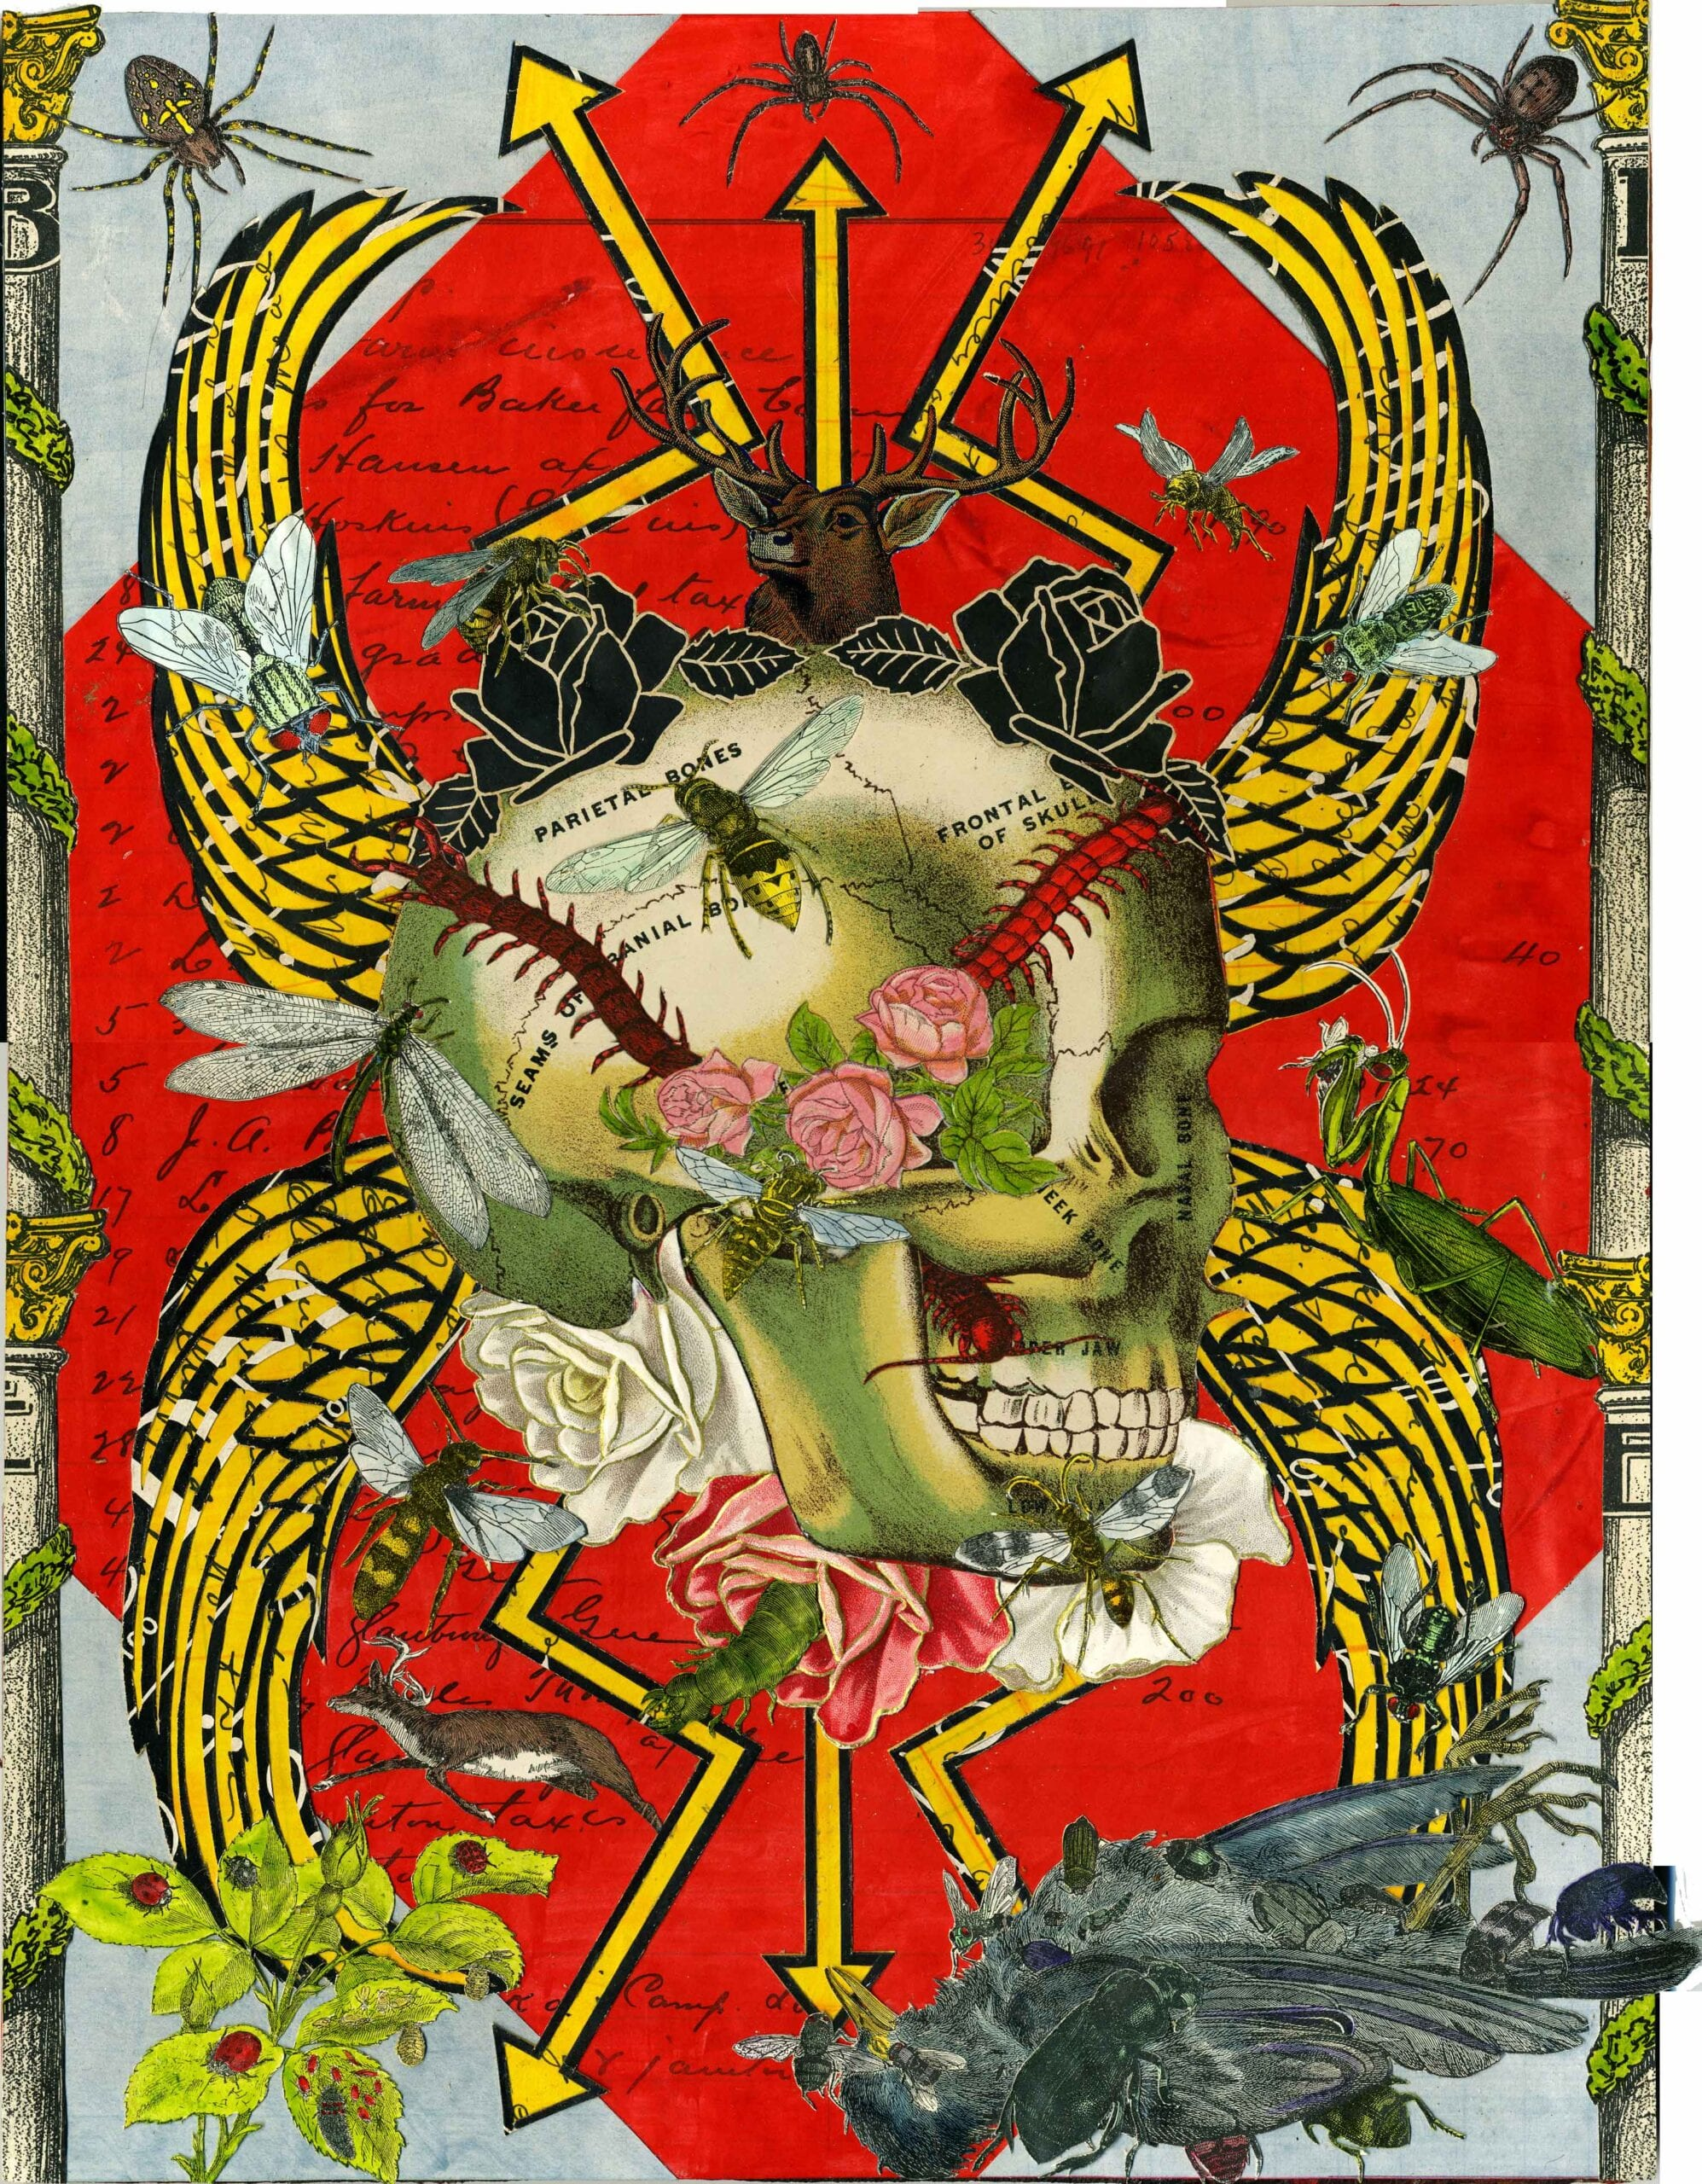 "Michael Pajon, The Sincerity of Death and Roses, mixed media collage on antique book covers, 19"" x 16"", 2014. Courtesy of Jonathan Ferrara Gallery, New Orleans."